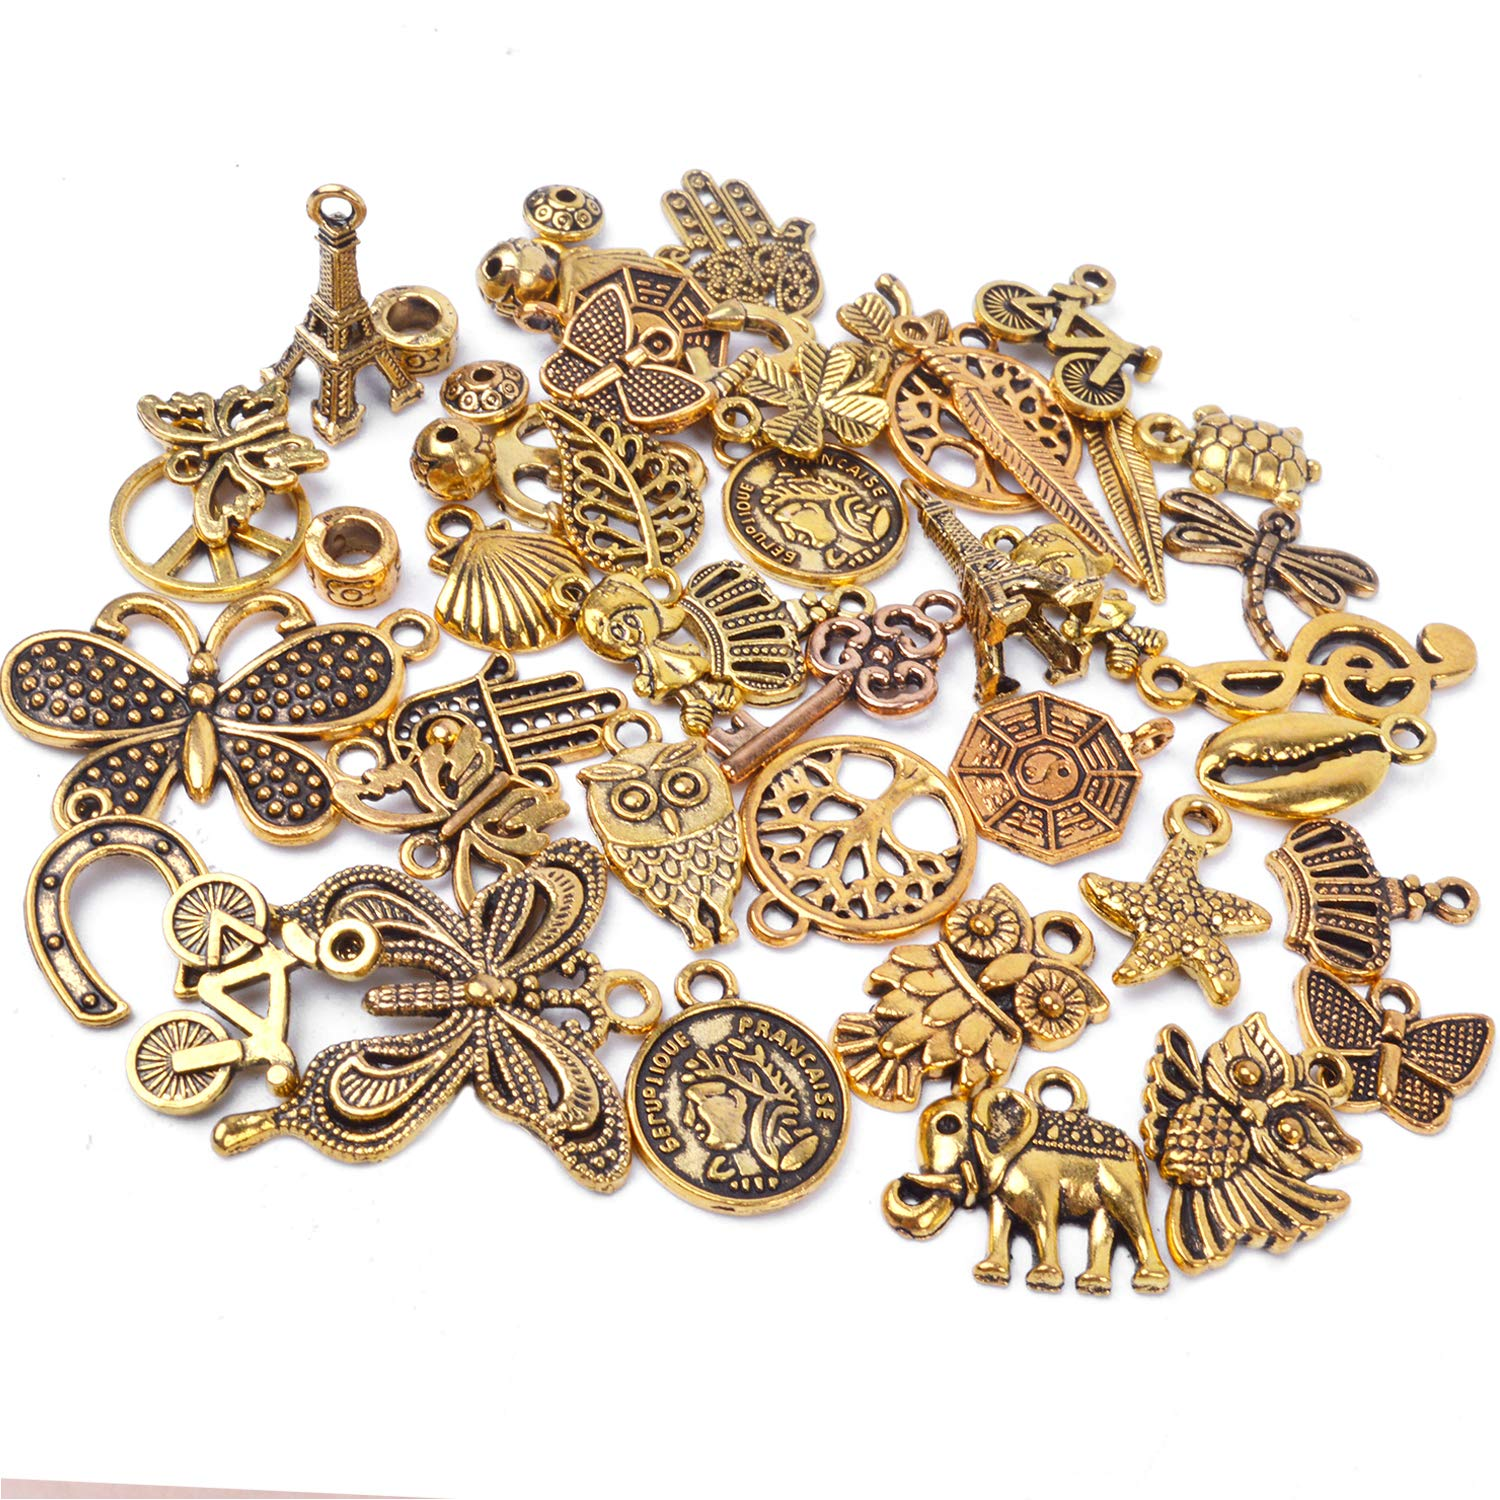 Cursive Letter Charms Pendants 26 Alphabet DIY for Jewelry Making and Crafting Accessories 17.5mm 26Pcs